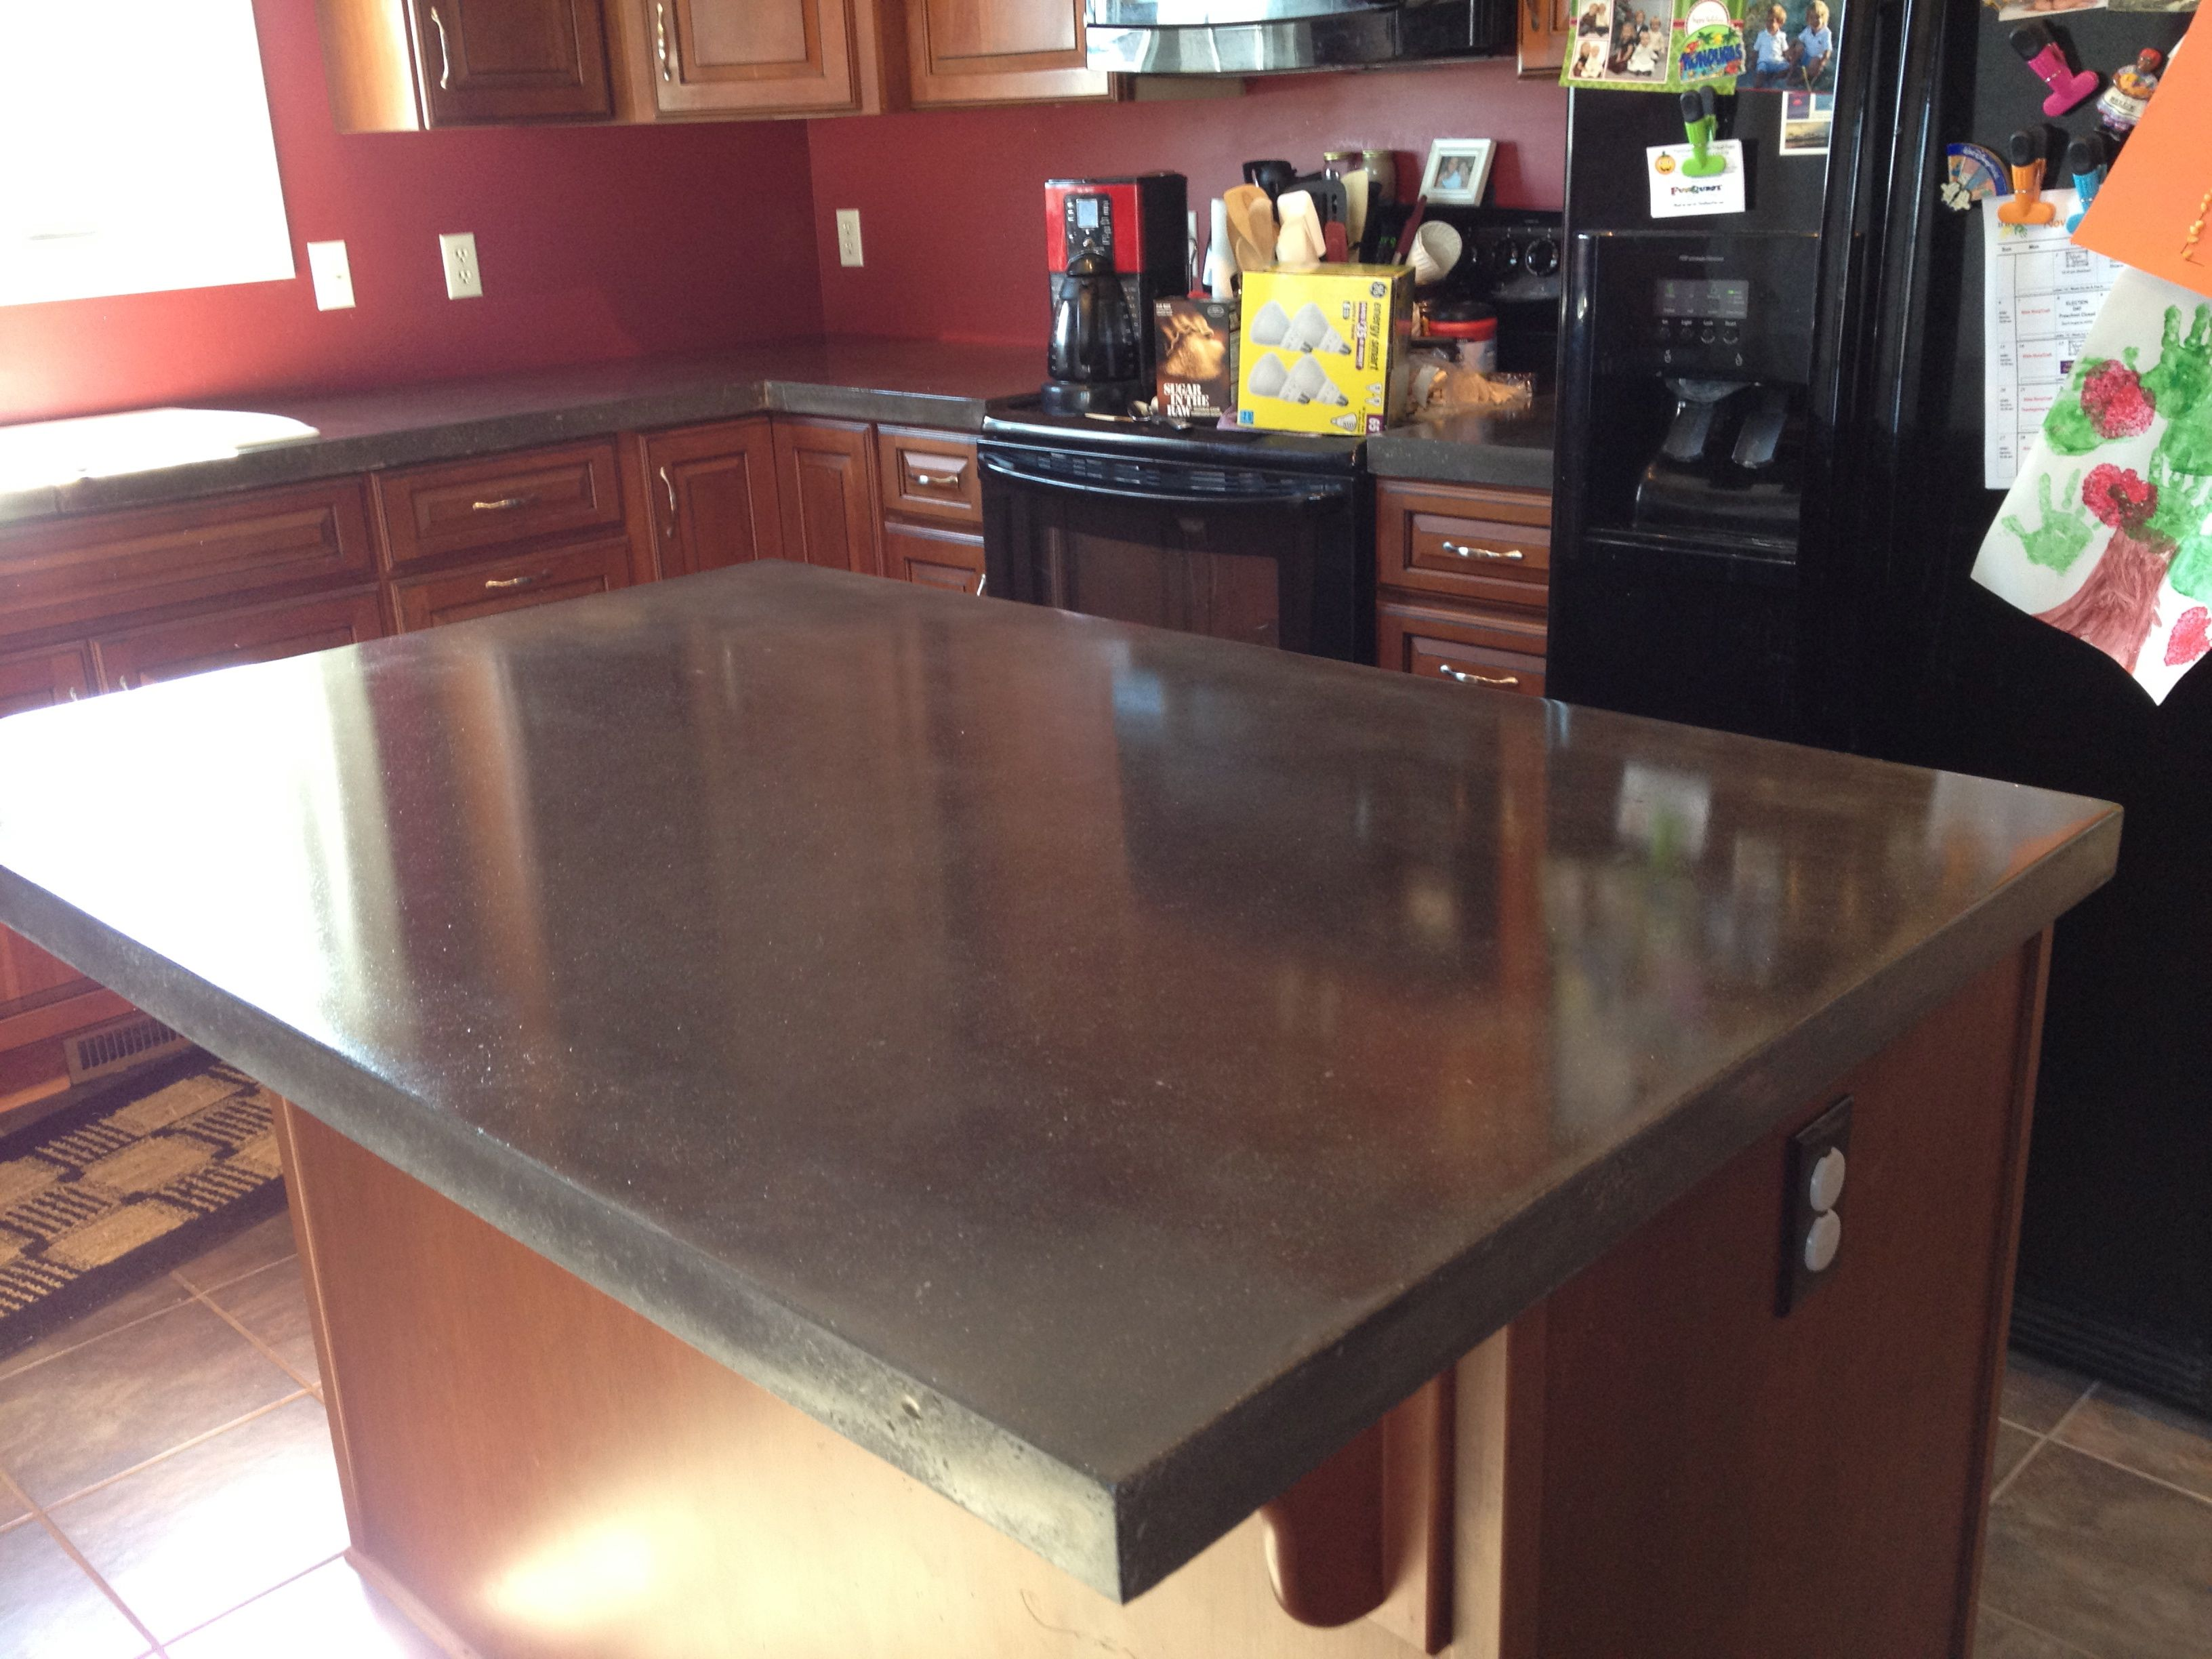 Poured Concrete Kitchen Floor Polished Concrete Countertops Decorative Concrete Of Virginia Va